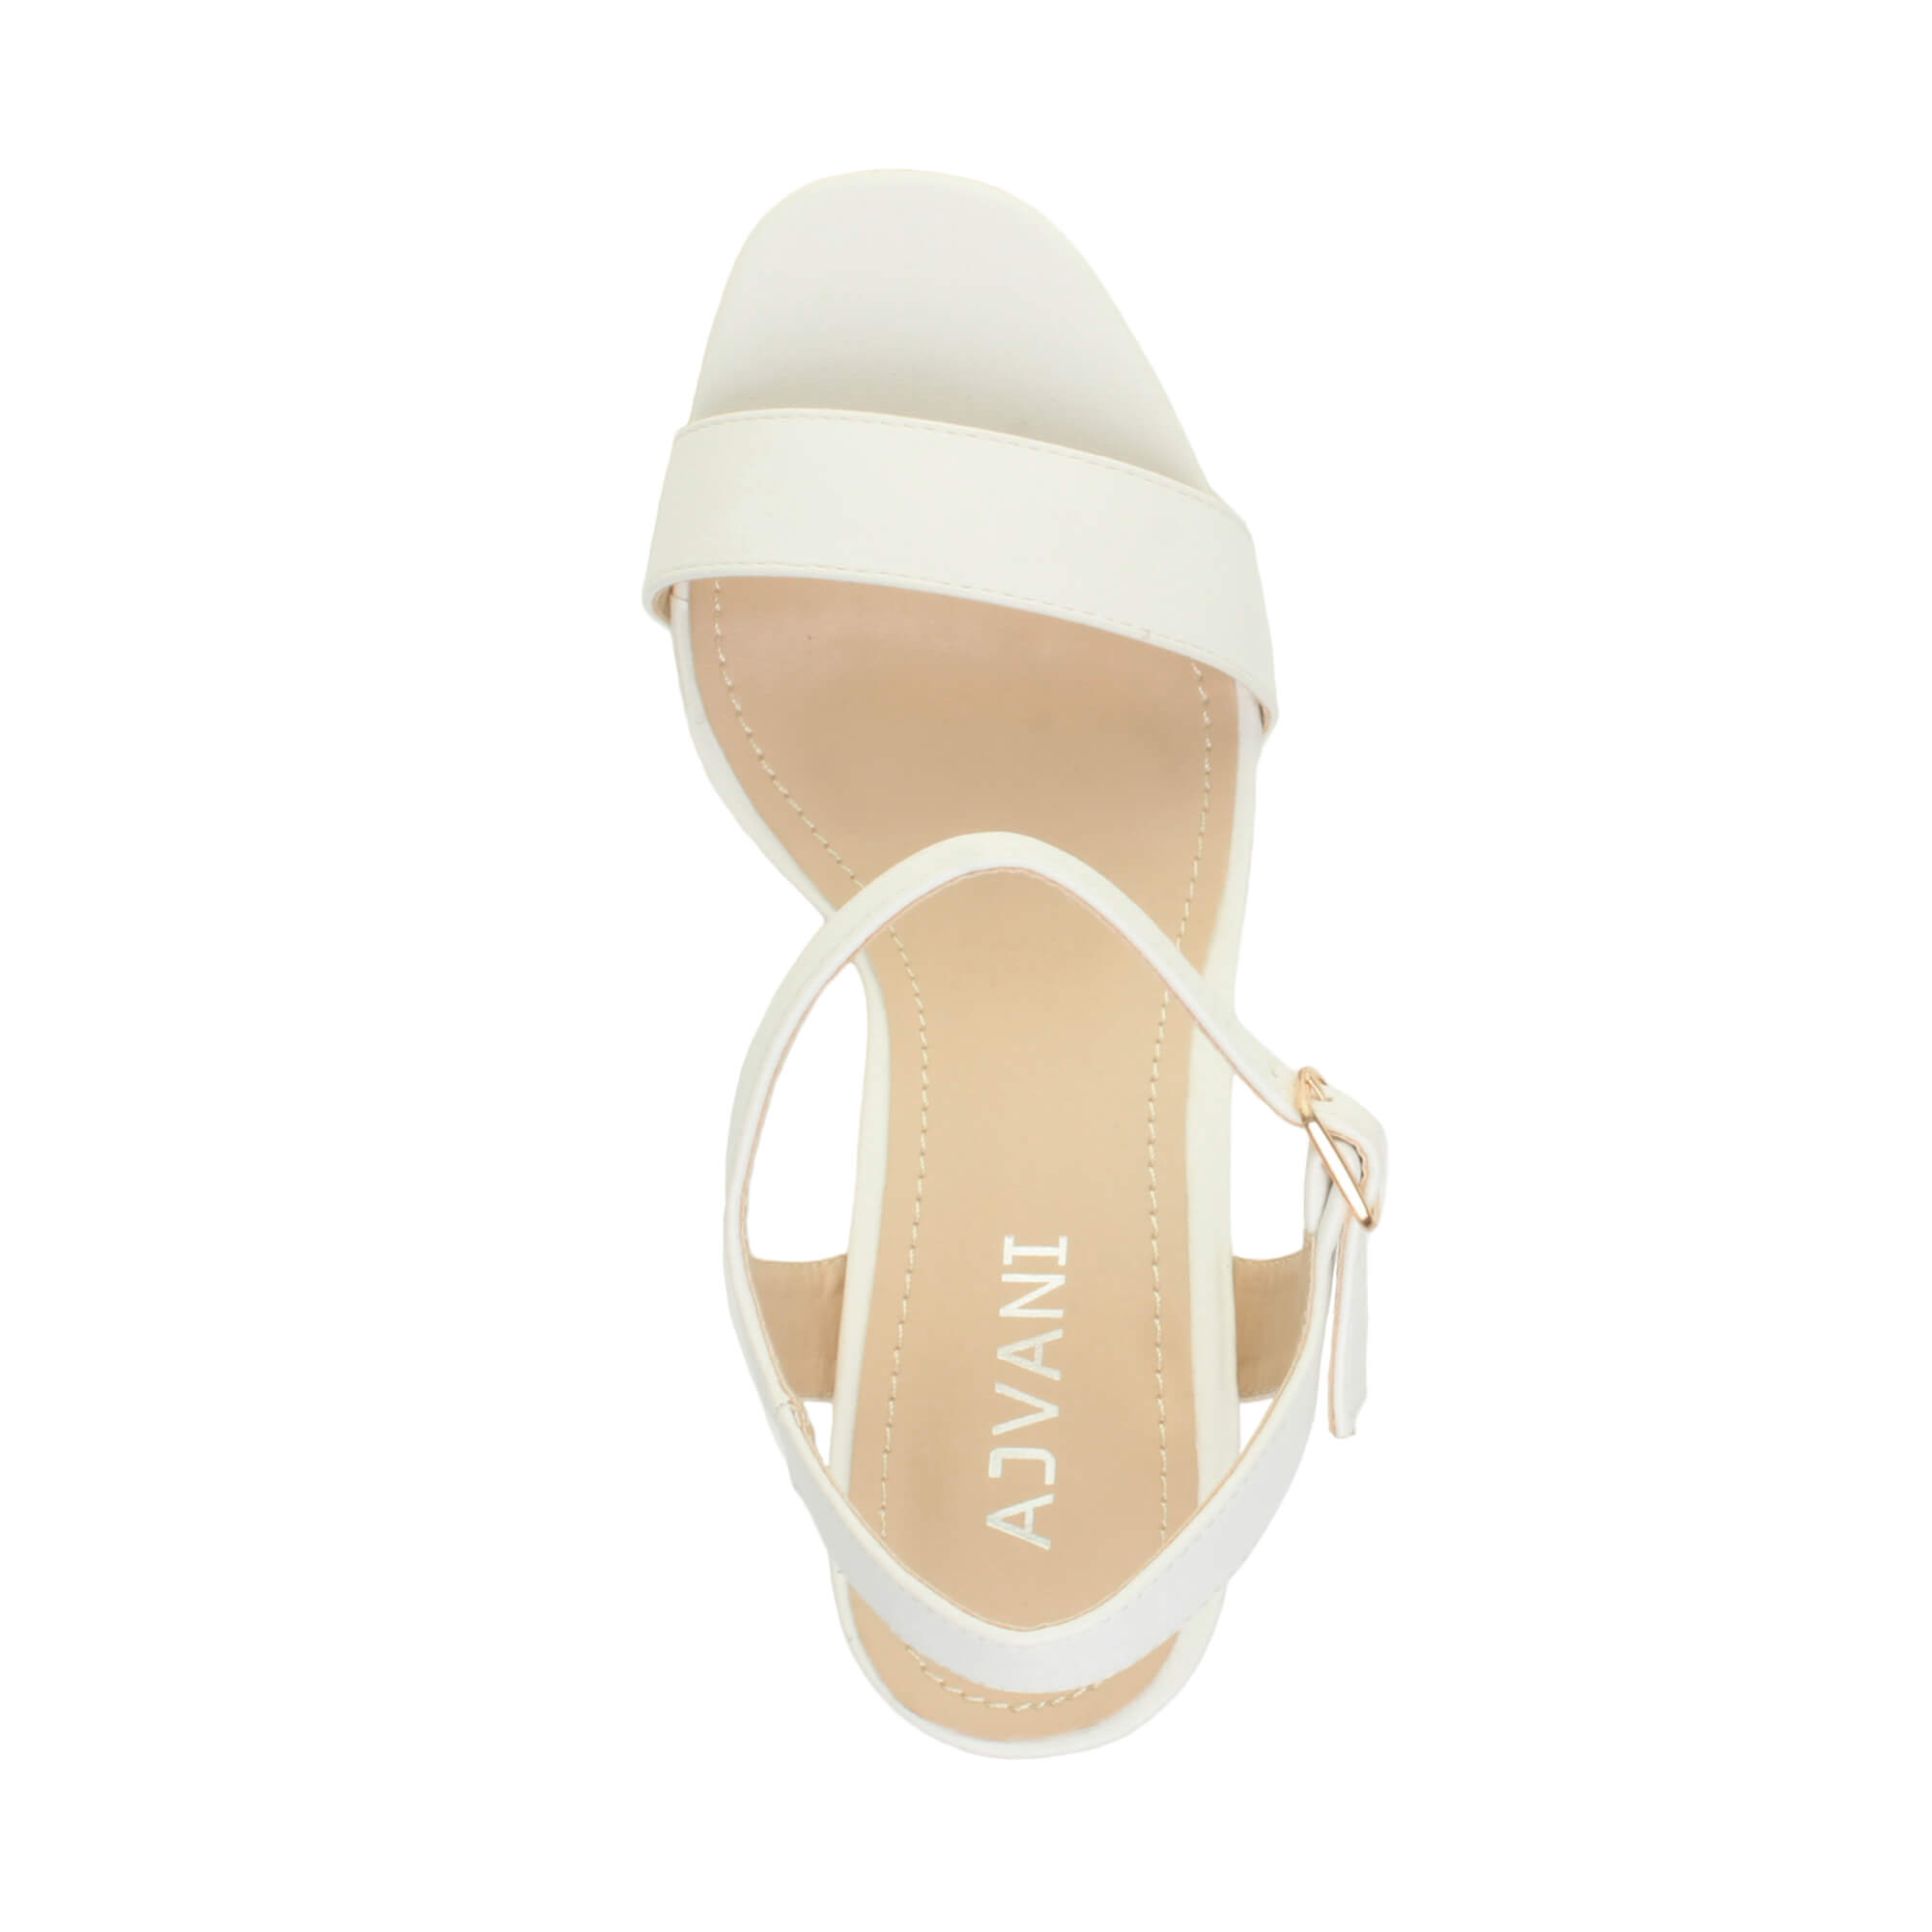 WOMENS-LADIES-HIGH-HEEL-BUCKLE-STRAPPY-BASIC-BARELY-THERE-SANDALS-SHOES-SIZE thumbnail 147